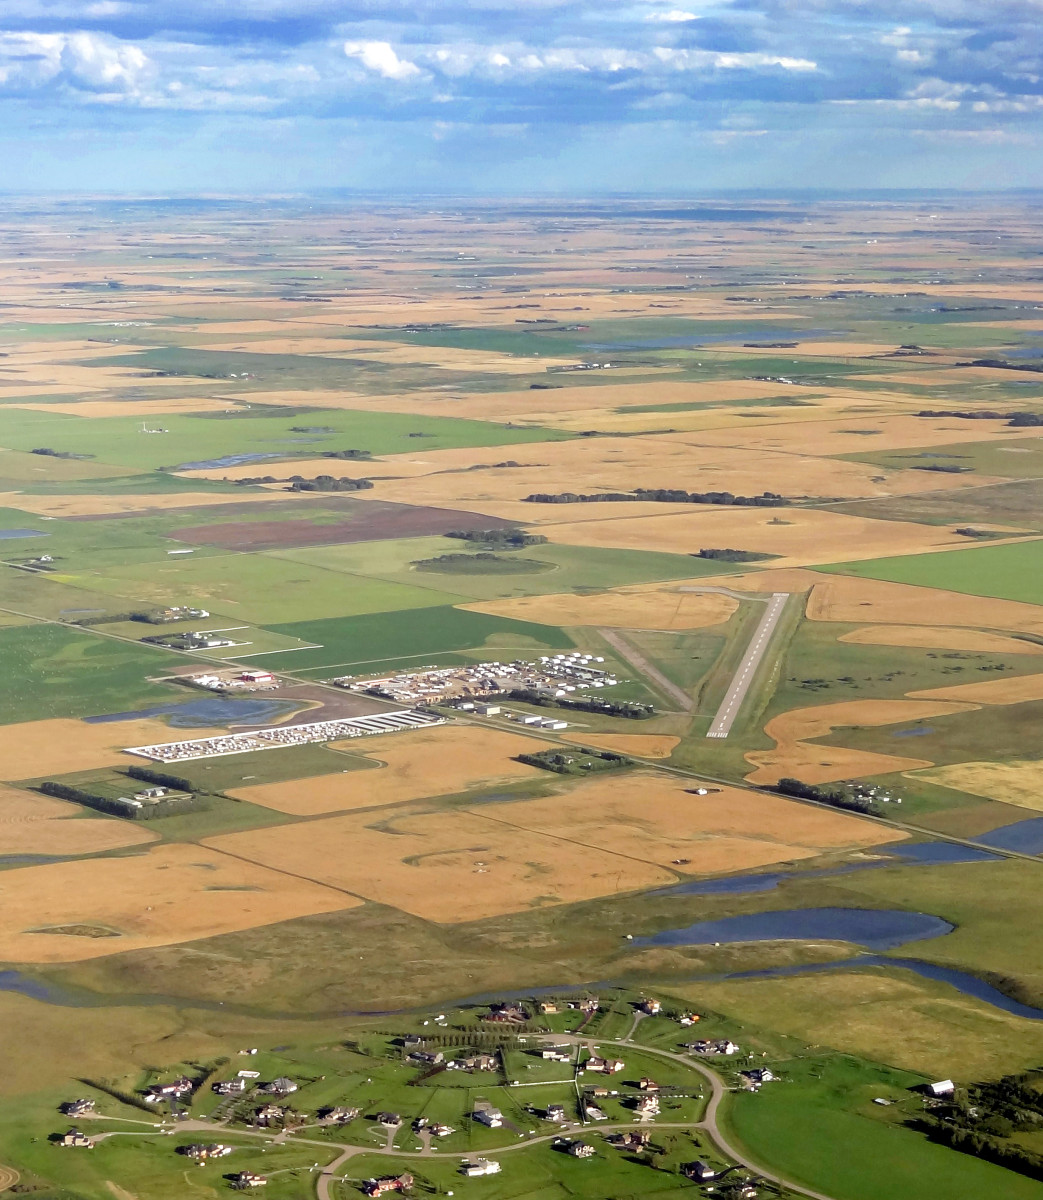 Airdrie Airport is located about 20km NNE of Calgary Airport in Alberta, Canada